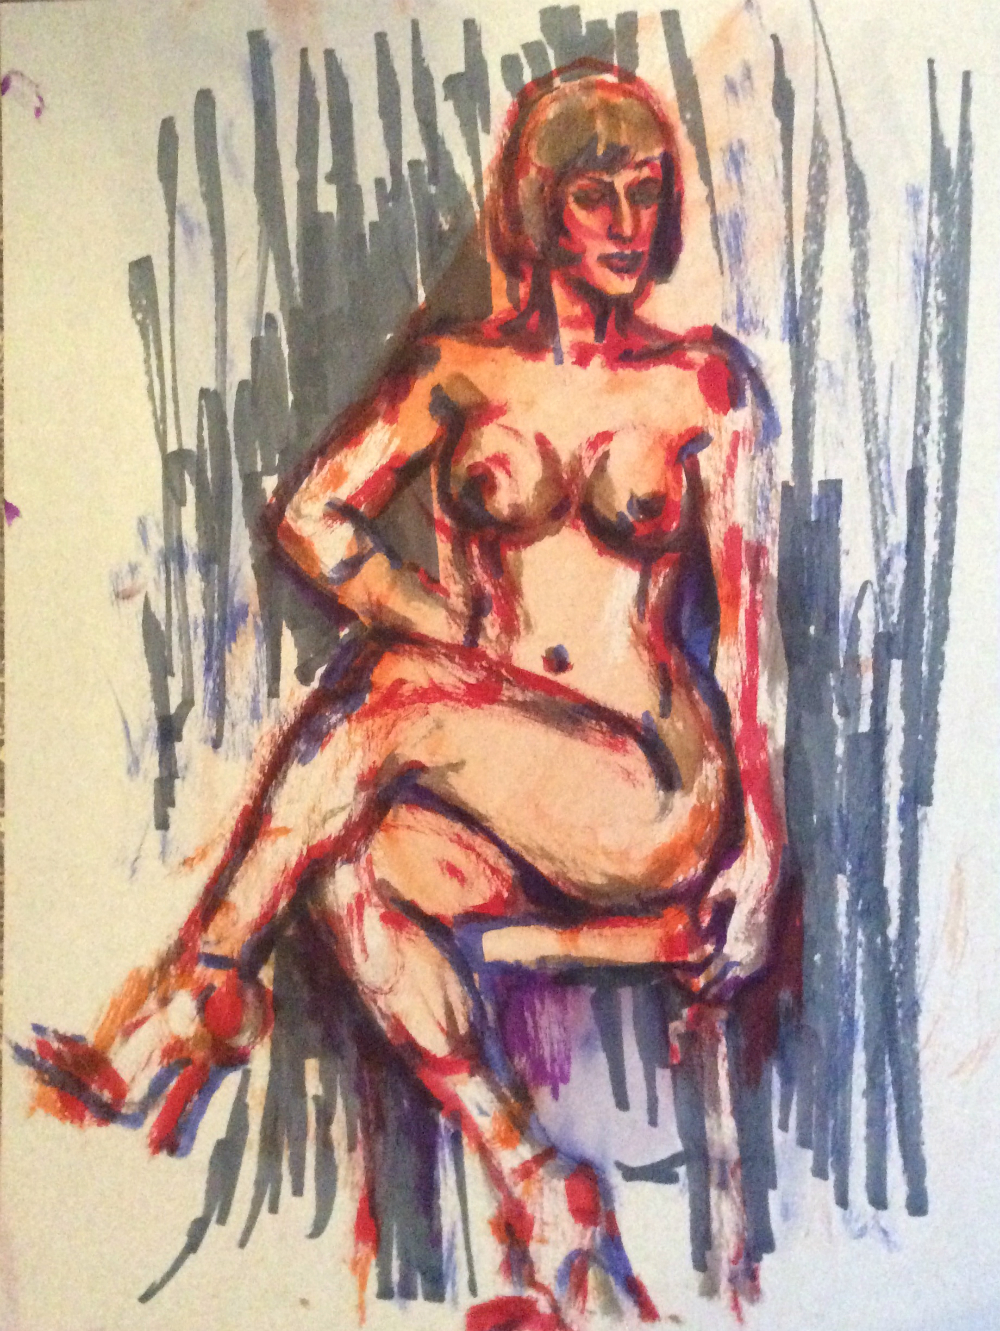 Watercolor brush pen drawing of Chiqui Love nude crossed legs by Suzanne Forbes Jan 28 2020